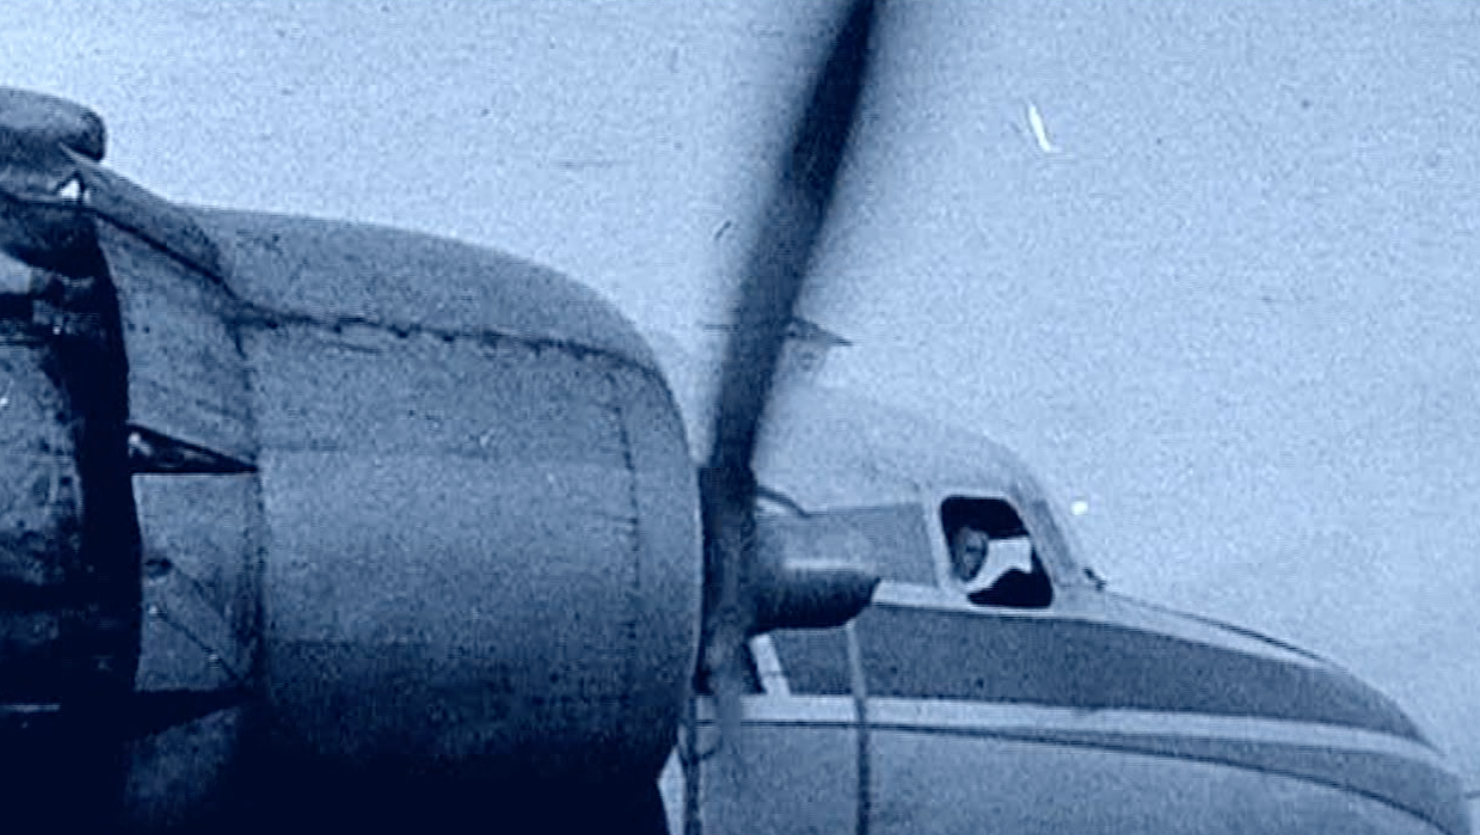 propeller plane with pilot looking out window